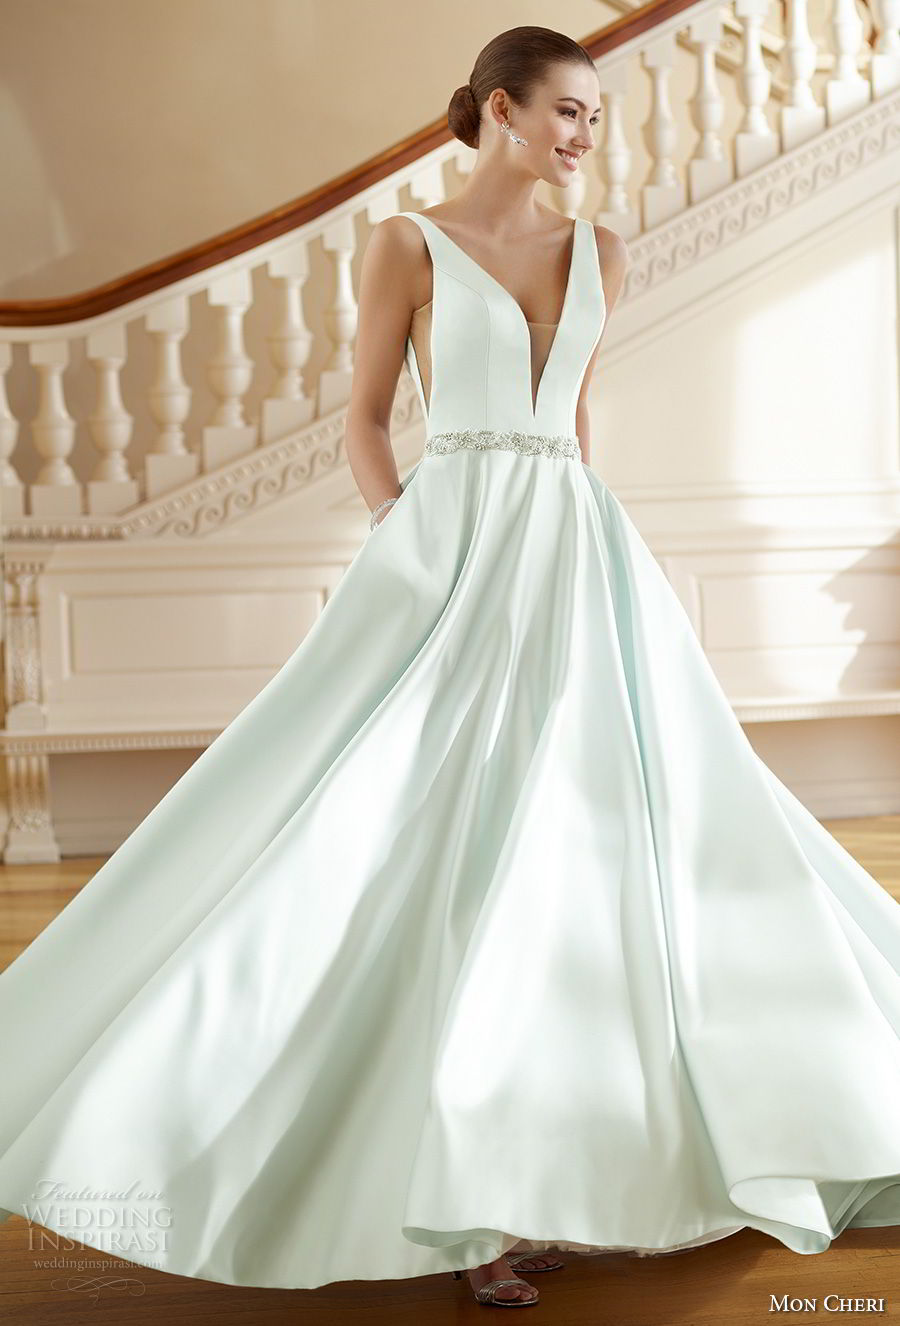 mon cheri fall 2017 bridal sleeveles strap deep v neck simple clean satin skirt green color a line wedding dress with pockets open v back chapel train (215) av